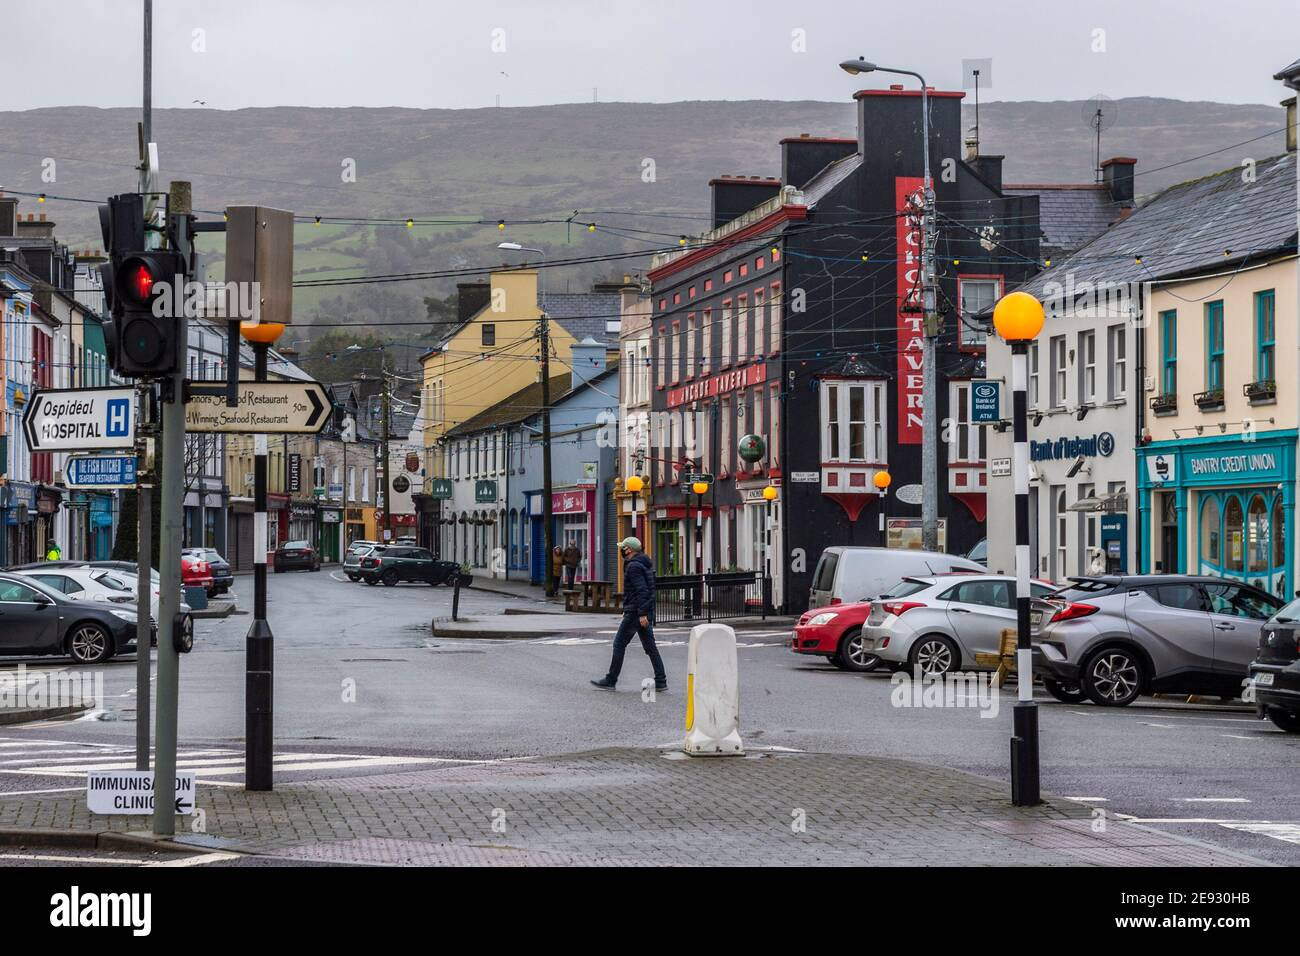 bantry-west-cork-ireland-2nd-feb-2021-bantry-town-centre-was-deserted-this-morning-bantry-has-one-of-the-highest-number-of-covid-19-cases-in-county-cork-credit-ag-newsalamy-live-news-2E930HB.jpg